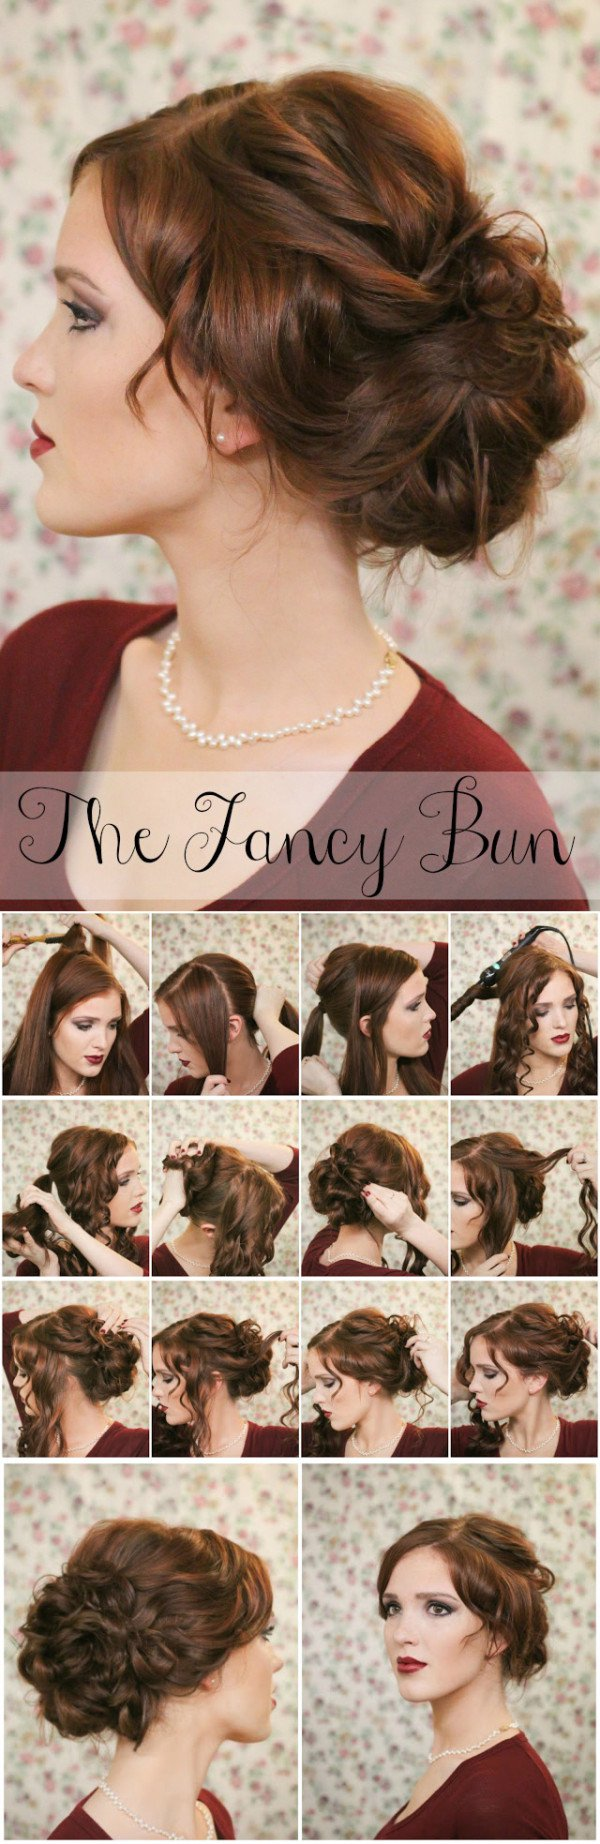 17 easy diy tutorials for glamorous and cute hairstyle pinterest 17 easy diy tutorials for glamorous and cute hairstyle solutioingenieria Choice Image